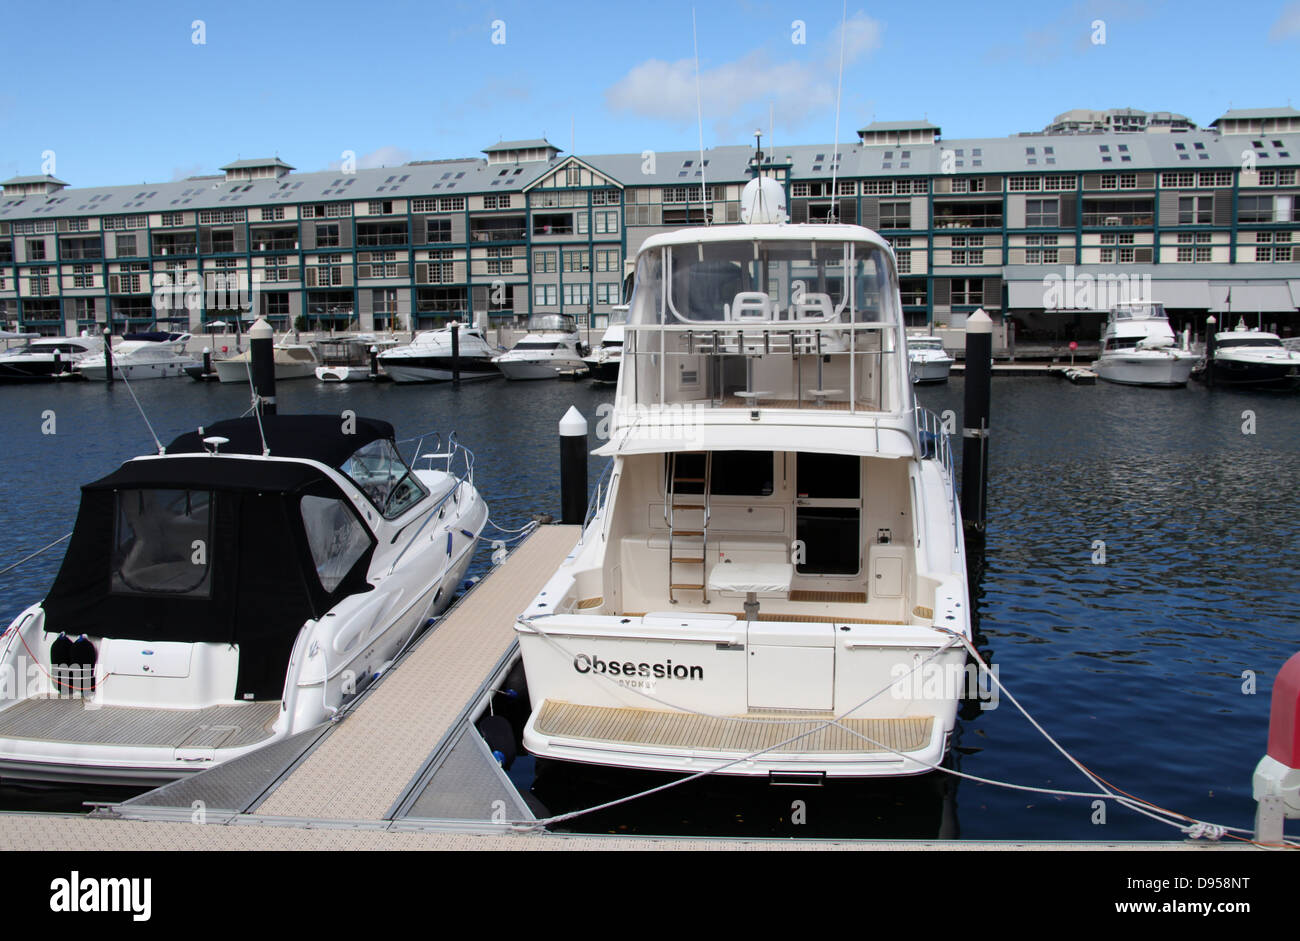 Boat called Obsession in Sydney - Stock Image